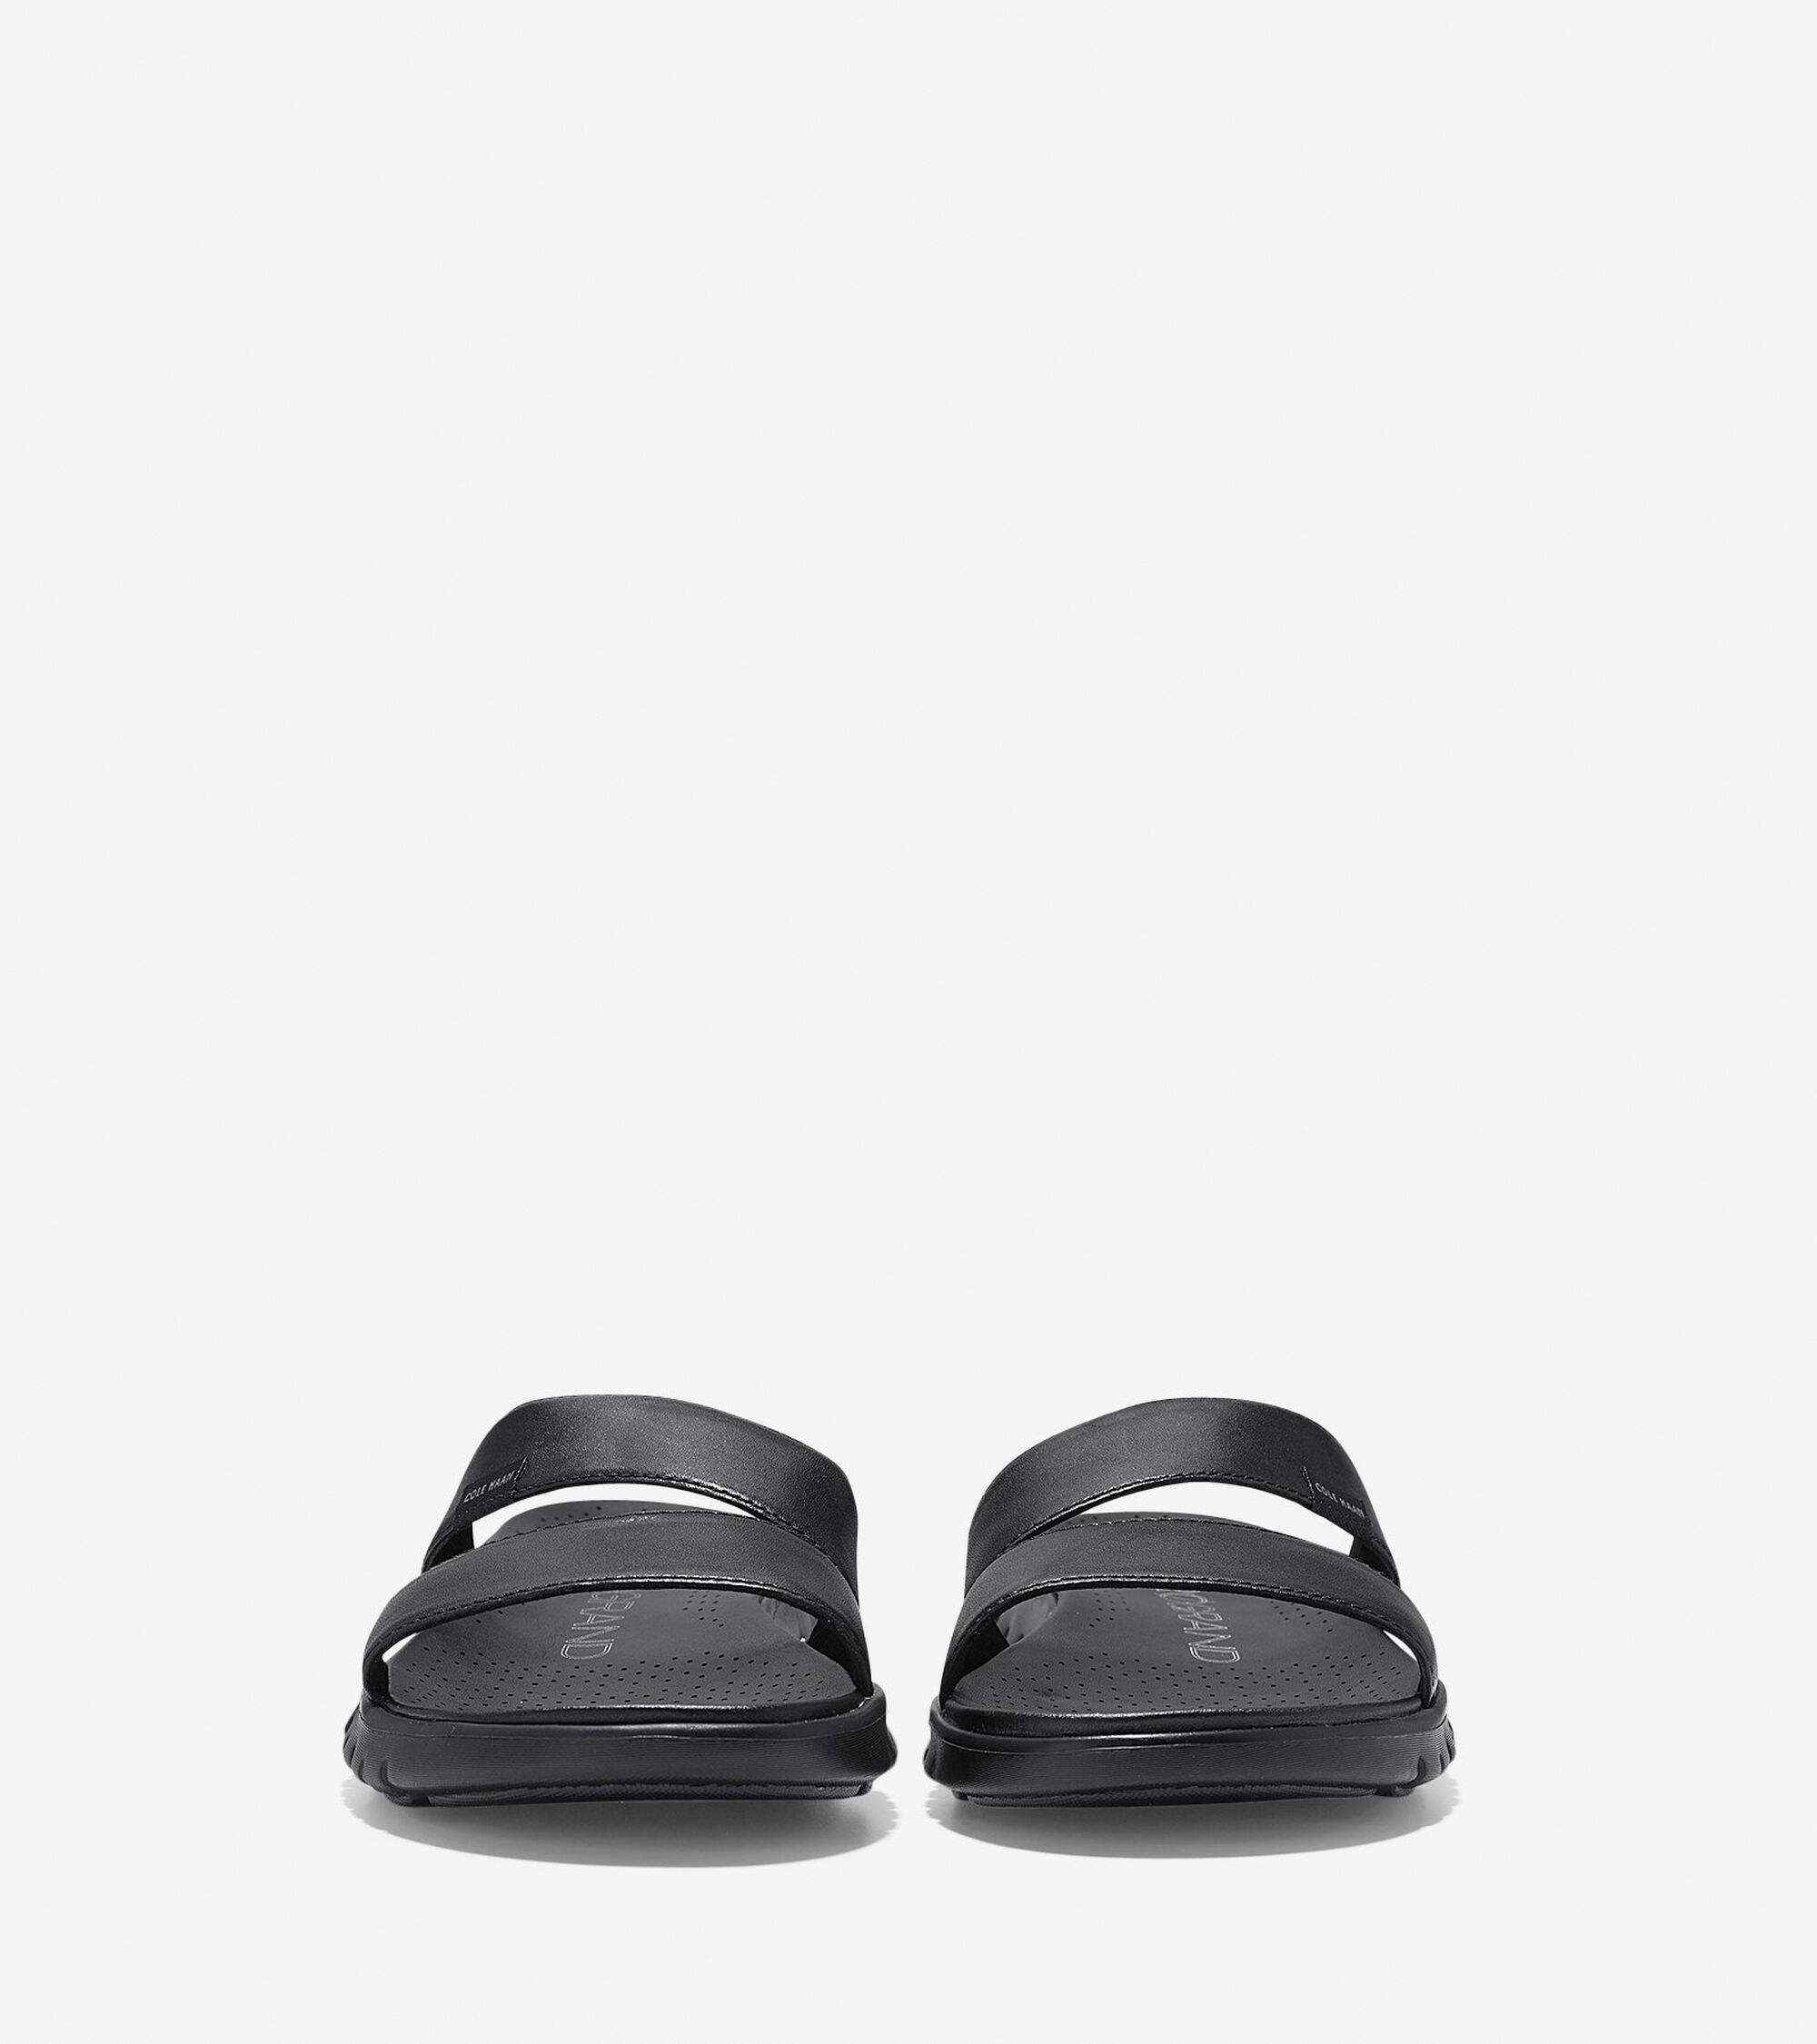 92d03b7f4 Women s ZERØGRAND Two-Strap Sandal · Women s ZERØGRAND Two-Strap ...